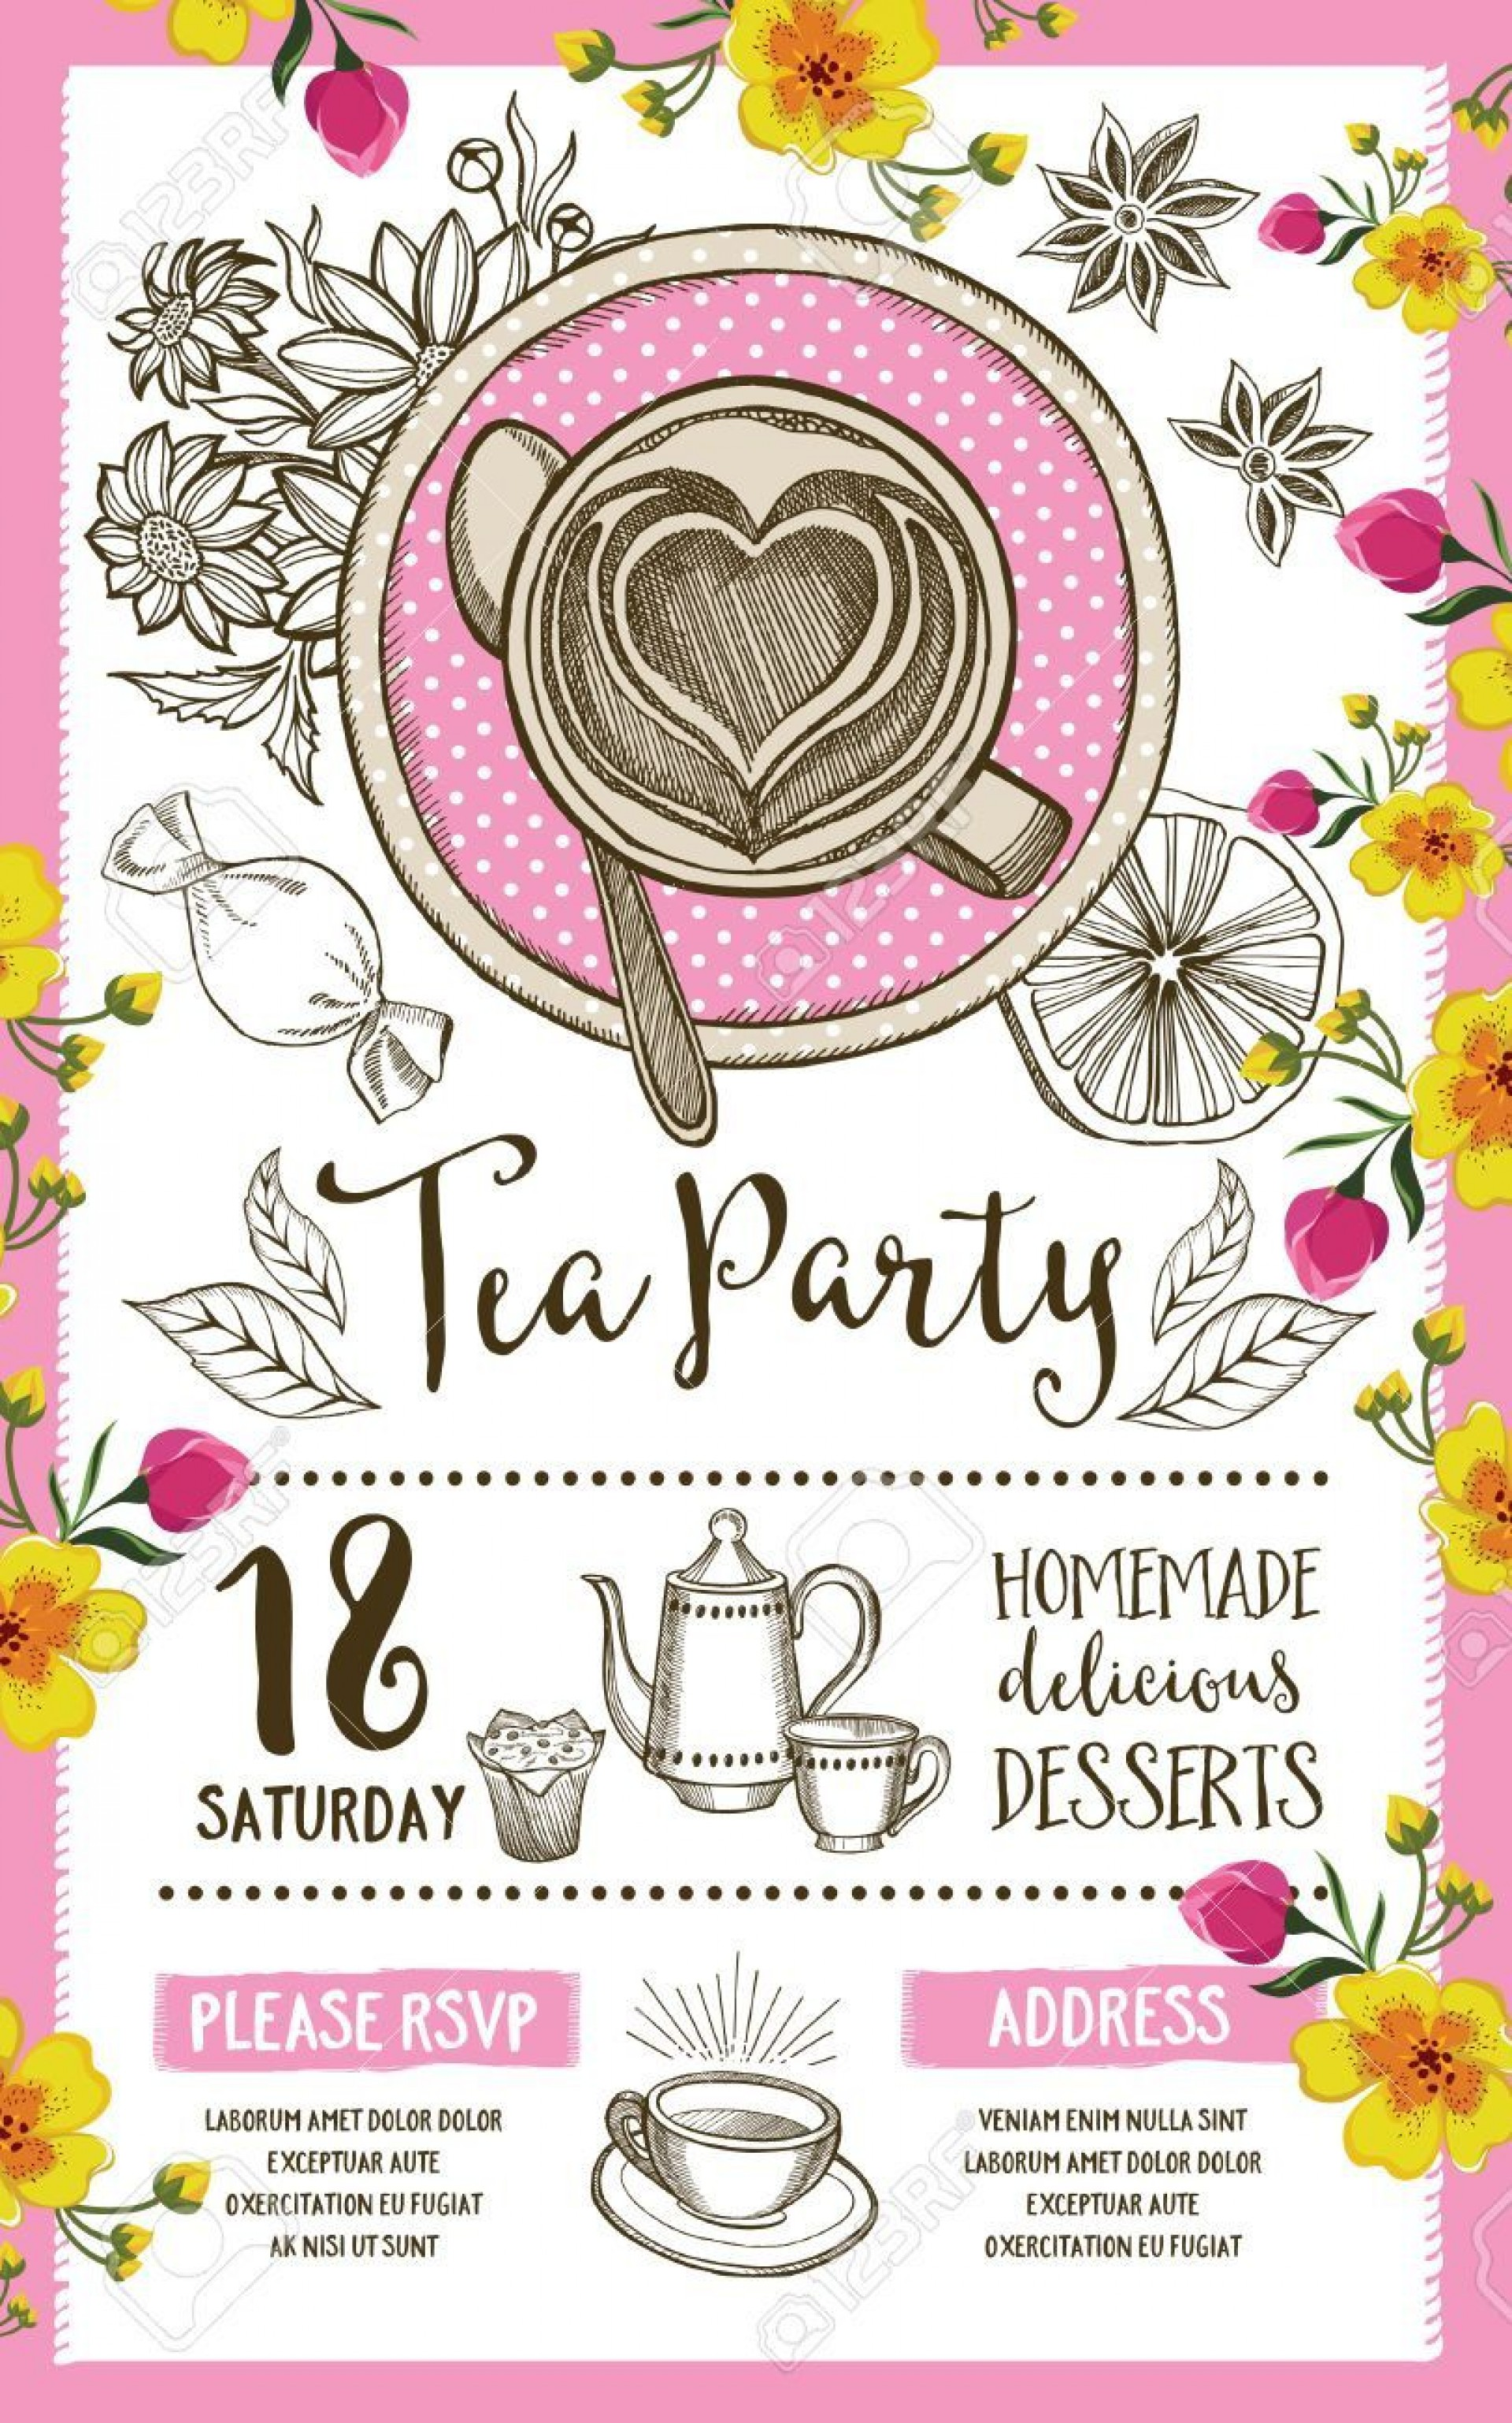 004 Wonderful Tea Party Invitation Template Inspiration  Vintage Free Editable Card Pdf1920